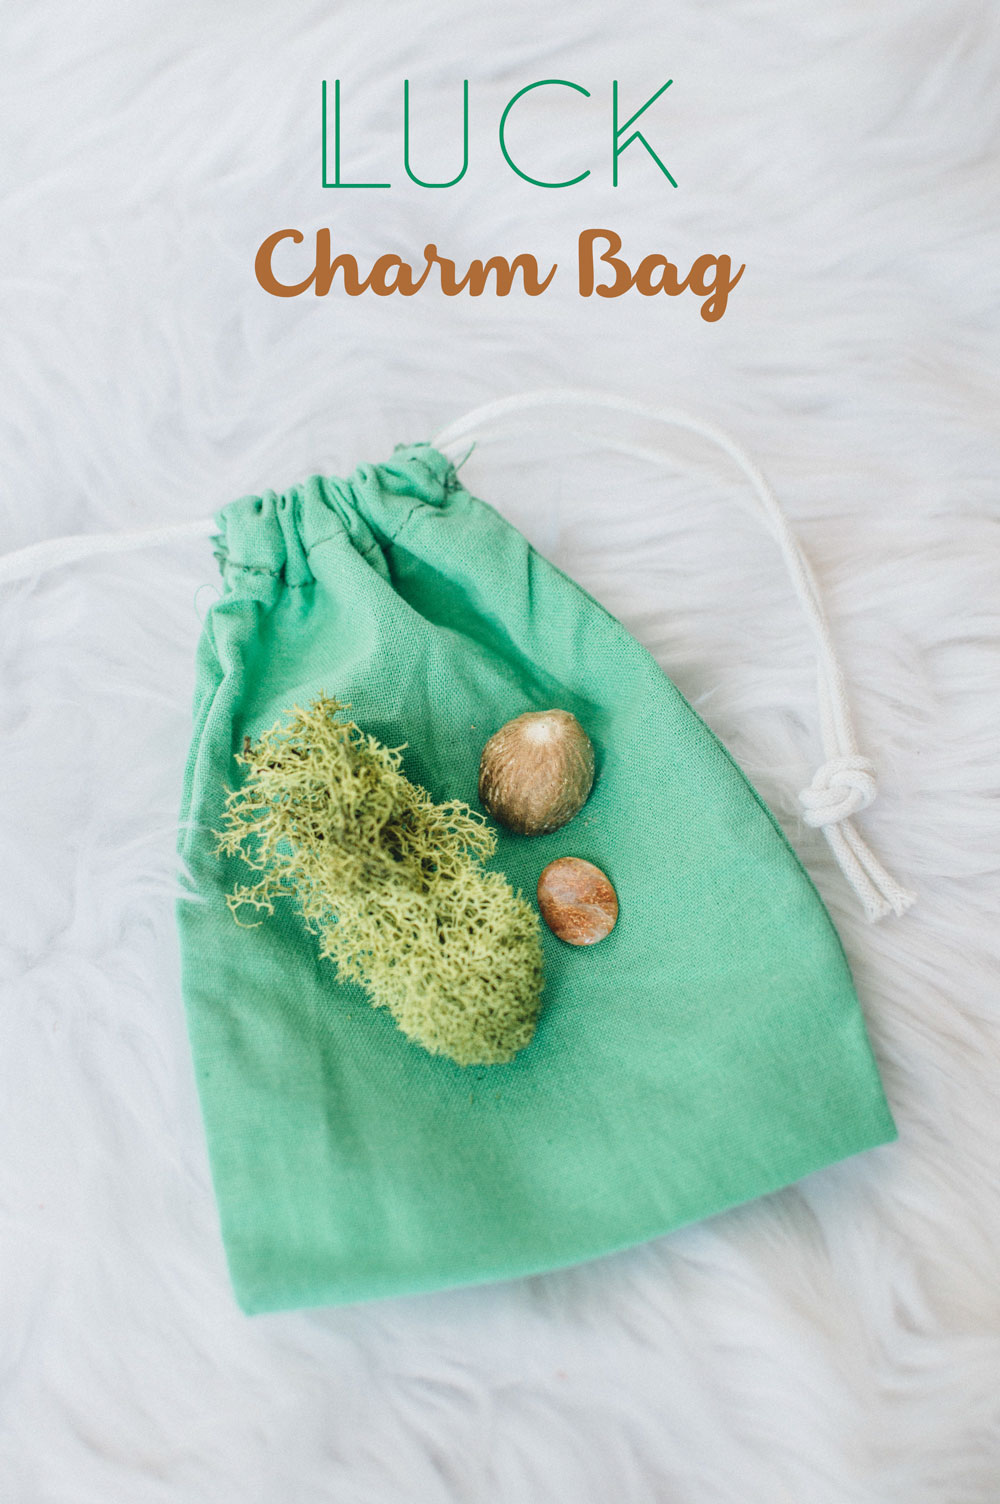 Magic Charm Bags For Protection Love Luck Amp Health